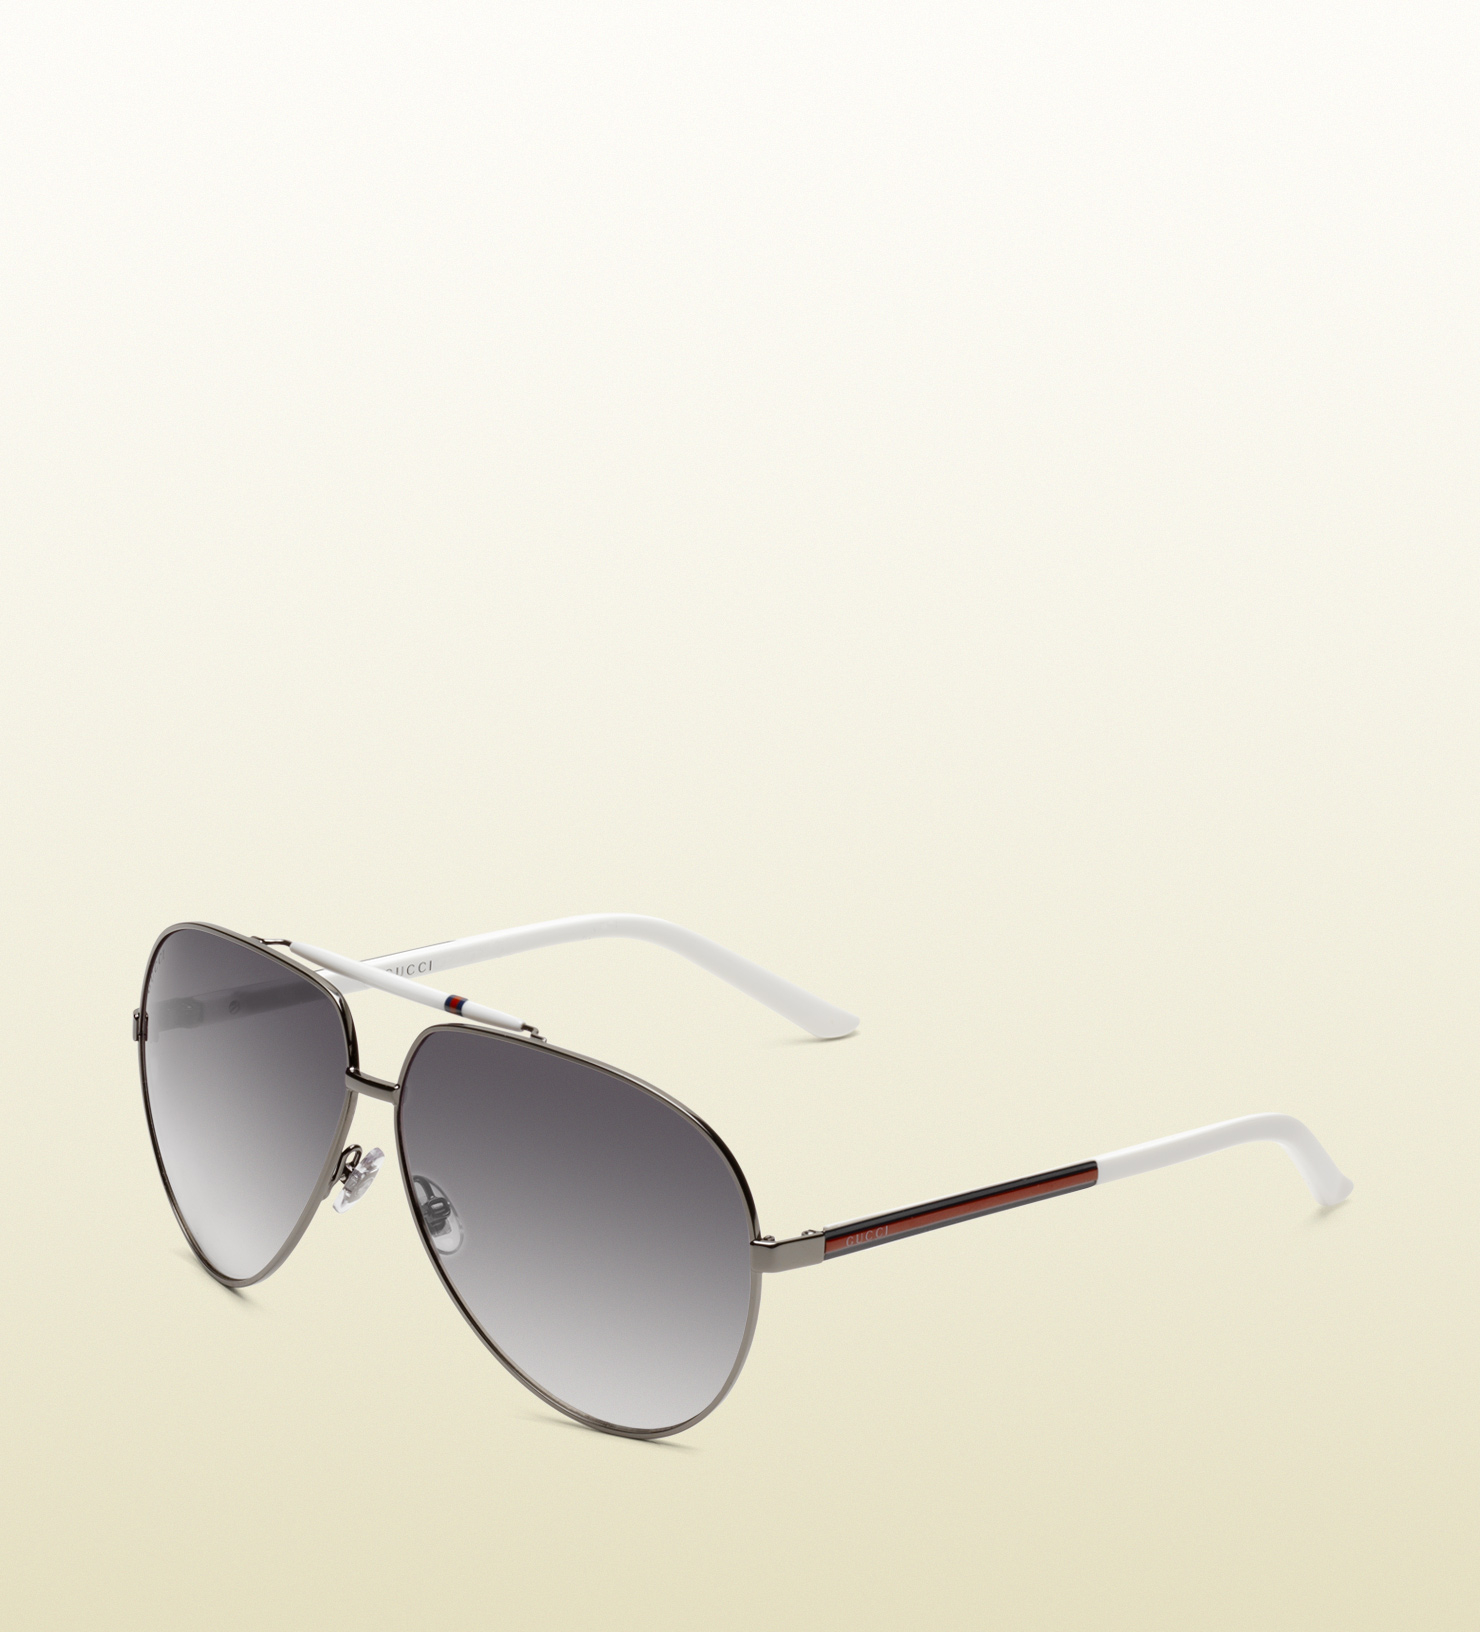 9ddc5cf6e40e4 Gucci New Gucci 1933 s White Logo Stripe Aviator Sunglasses